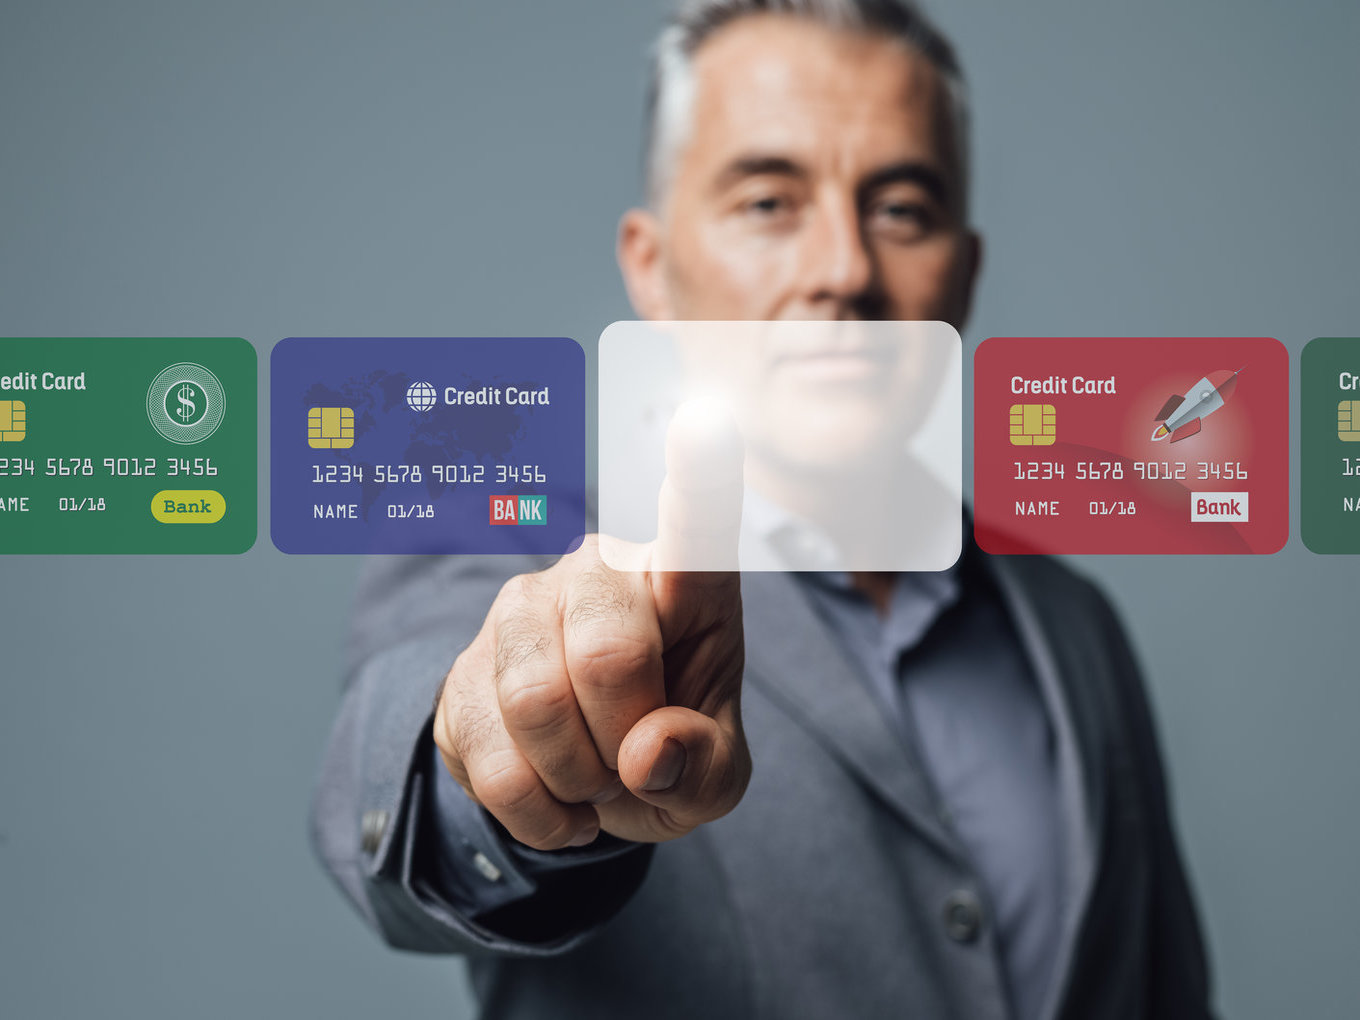 Can Credit Cards Solve The Modern Day Founder's Unique Problems?